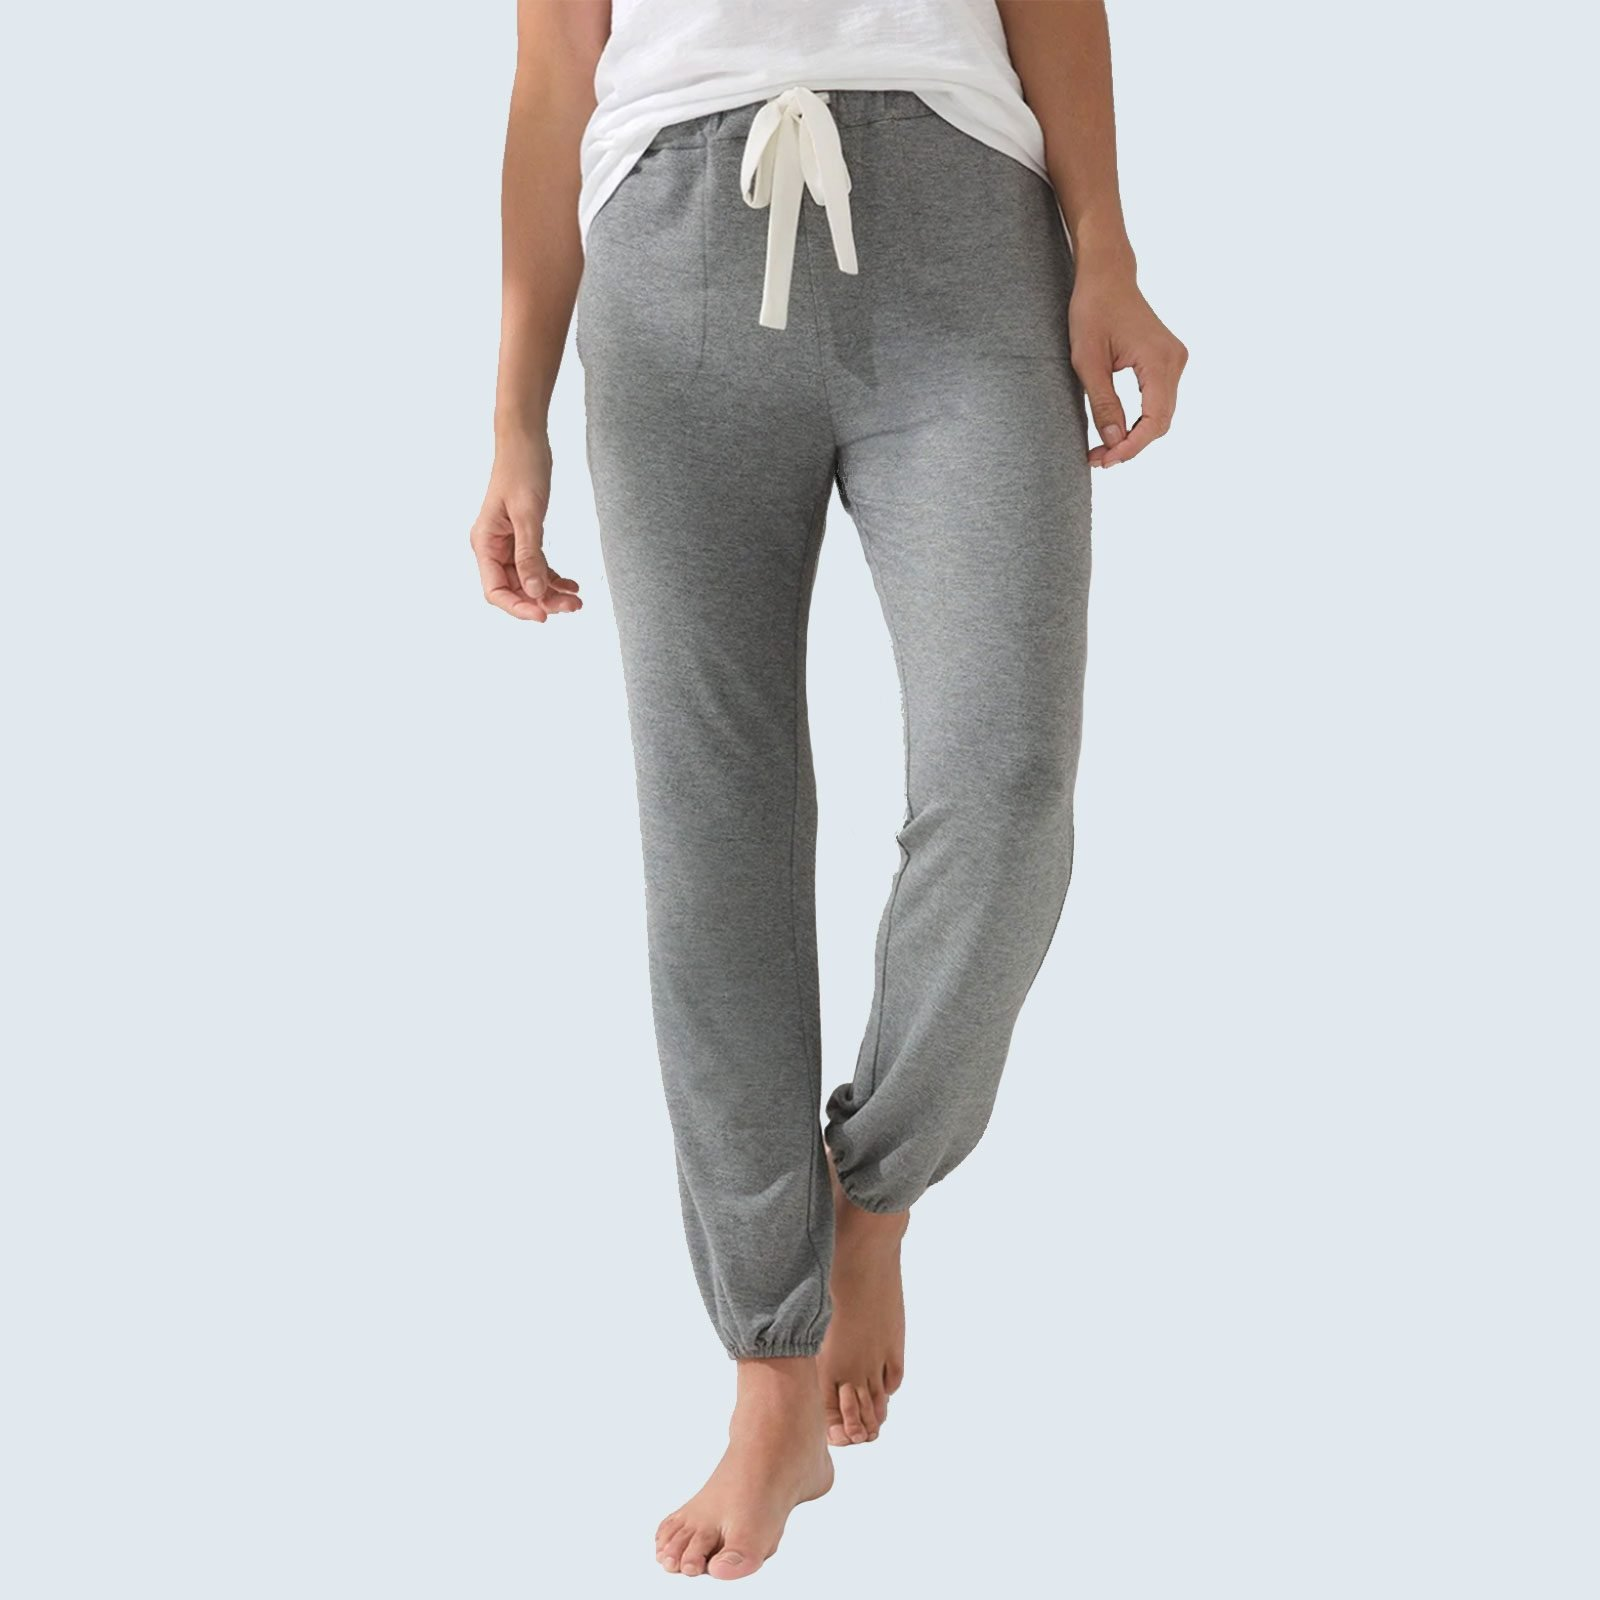 Best loungewear set for working from home: SomaWKND Sunday Pants and Wrap